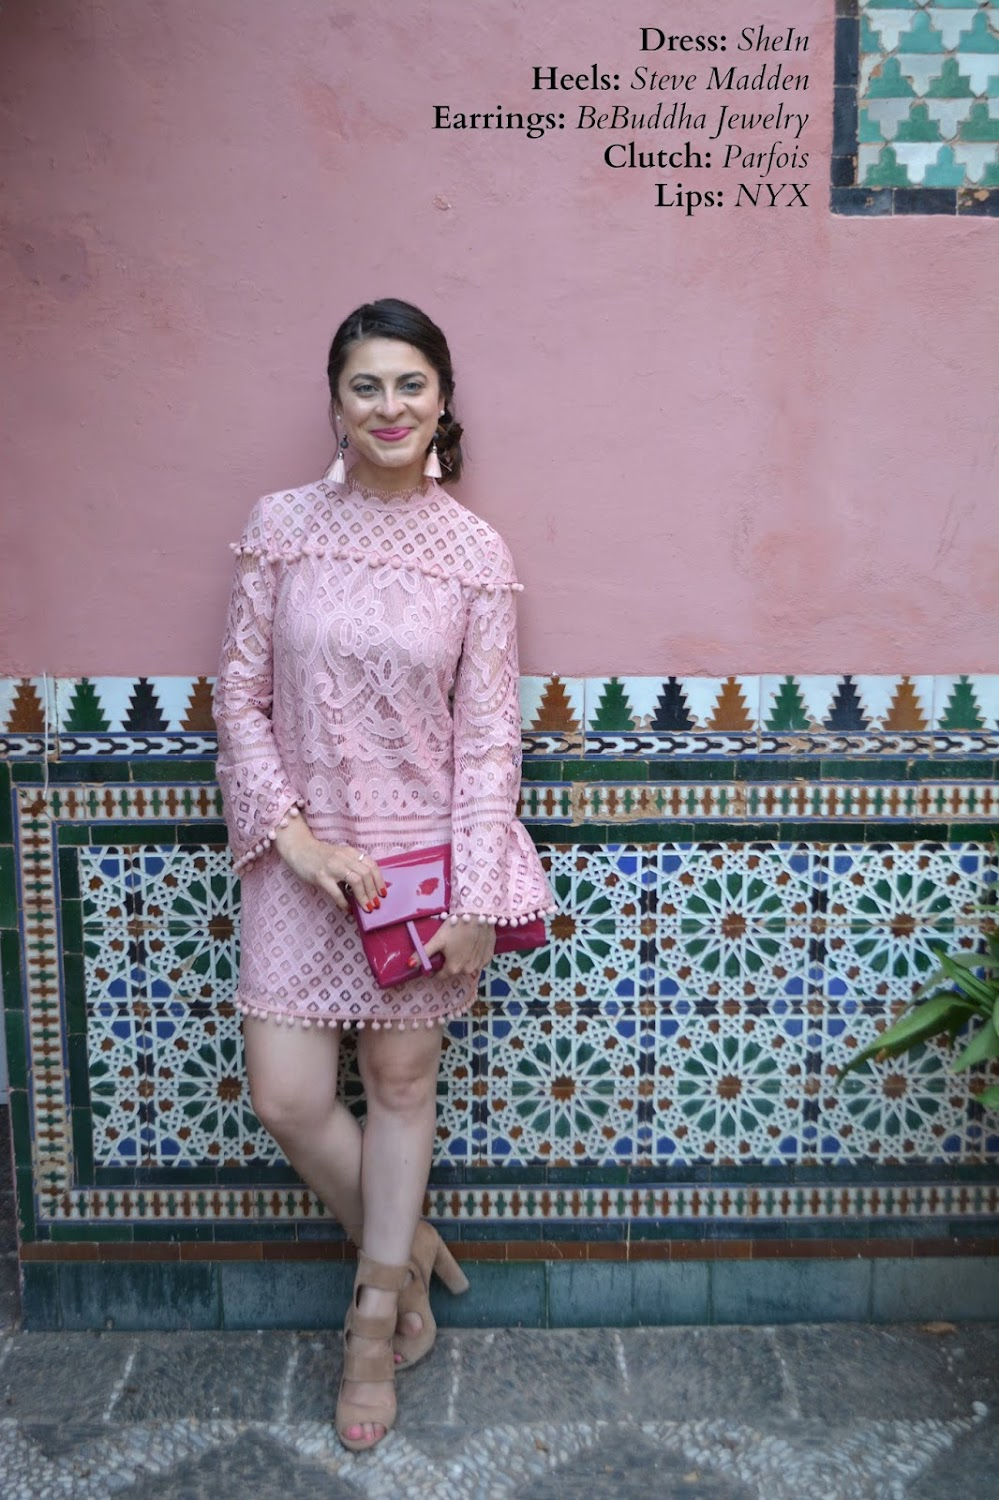 Girl in a pink lace dress standing against a Spanish tiled wall